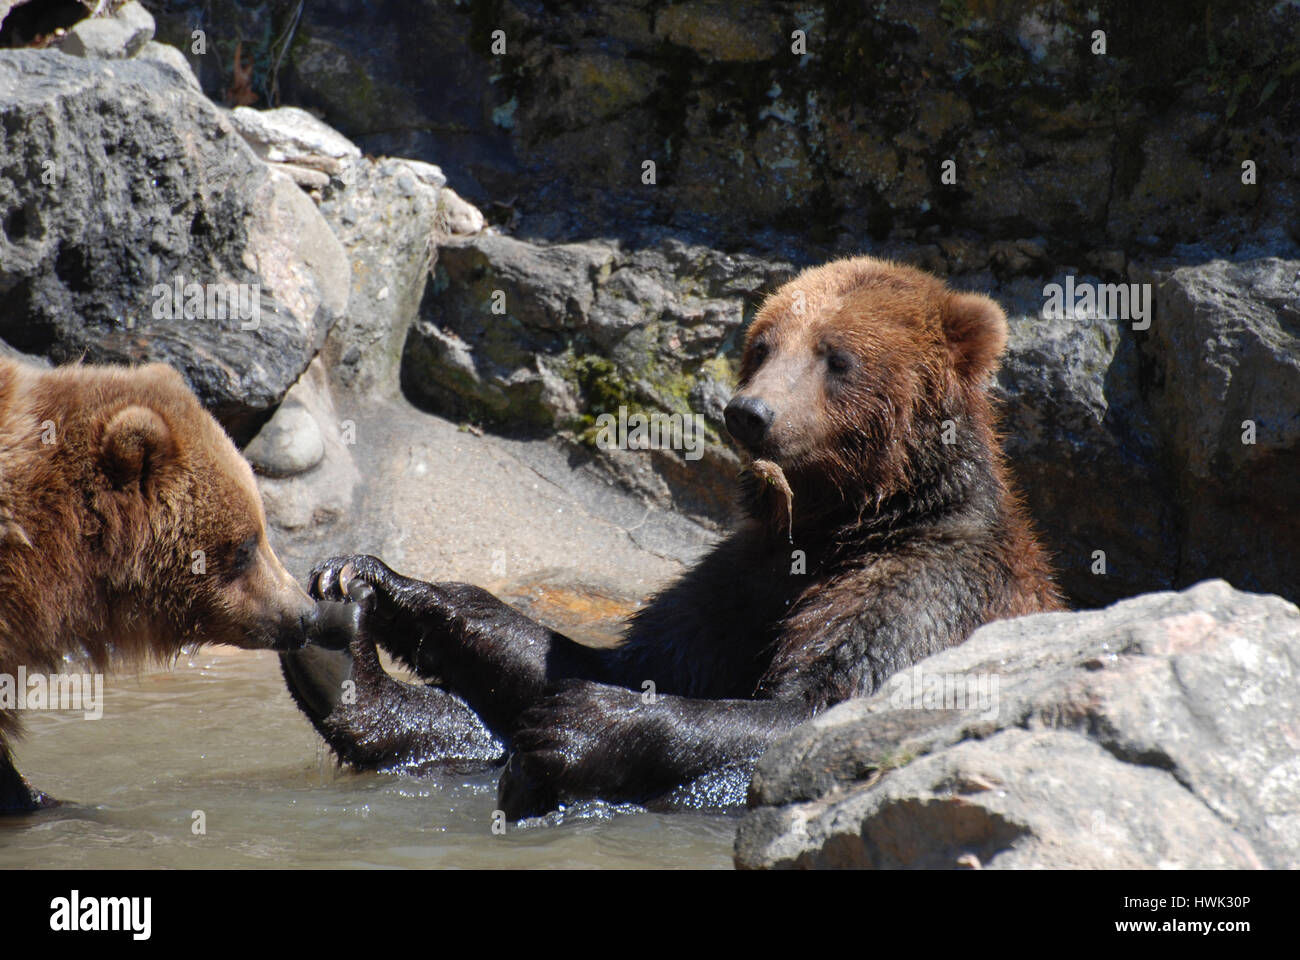 Grizzly bear doing a happy baby yoga pose in shallow water. - Stock Image